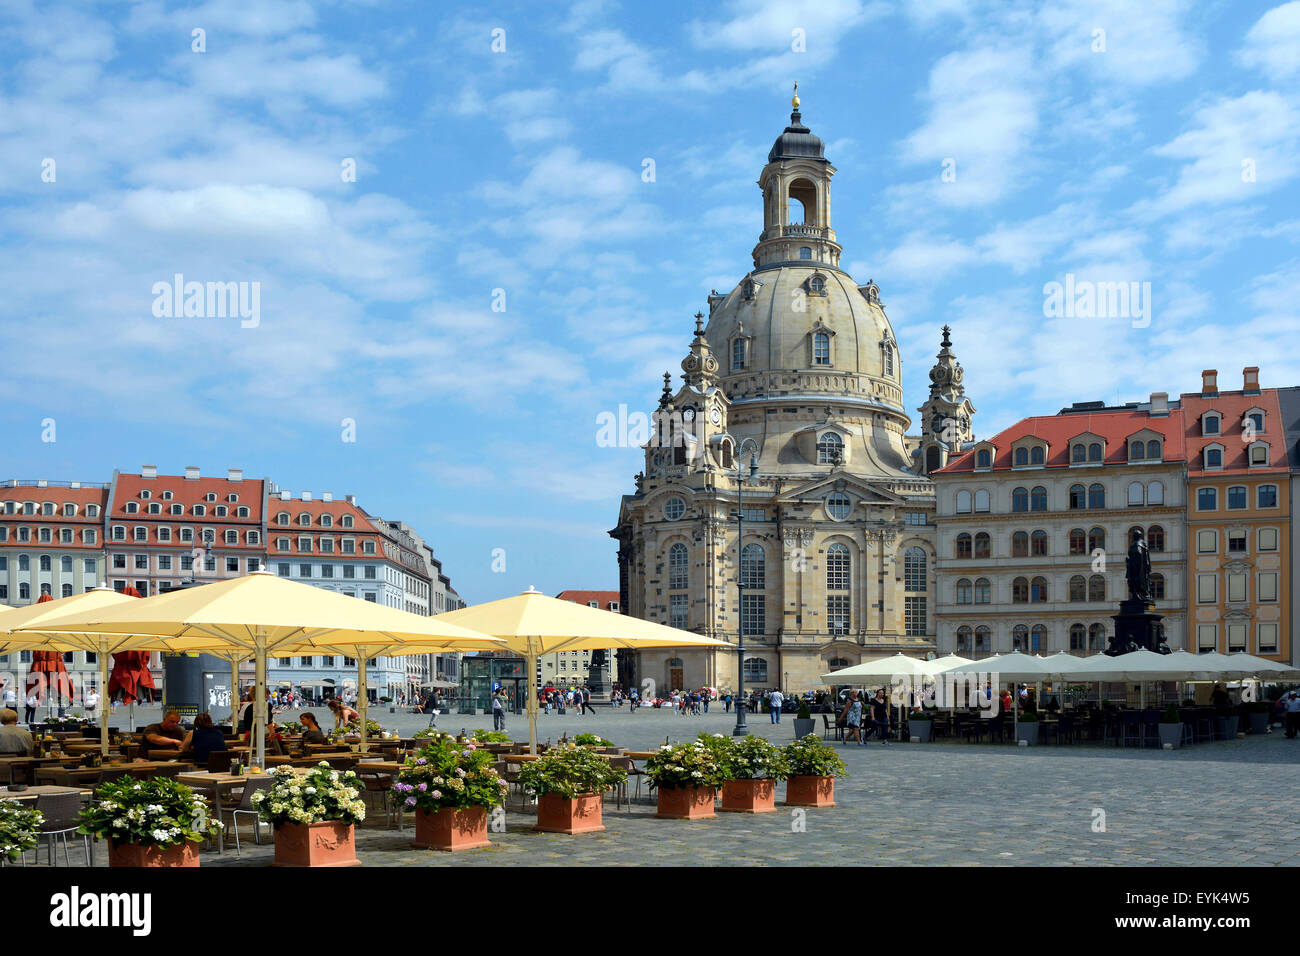 dresden stockfotos dresden bilder alamy. Black Bedroom Furniture Sets. Home Design Ideas